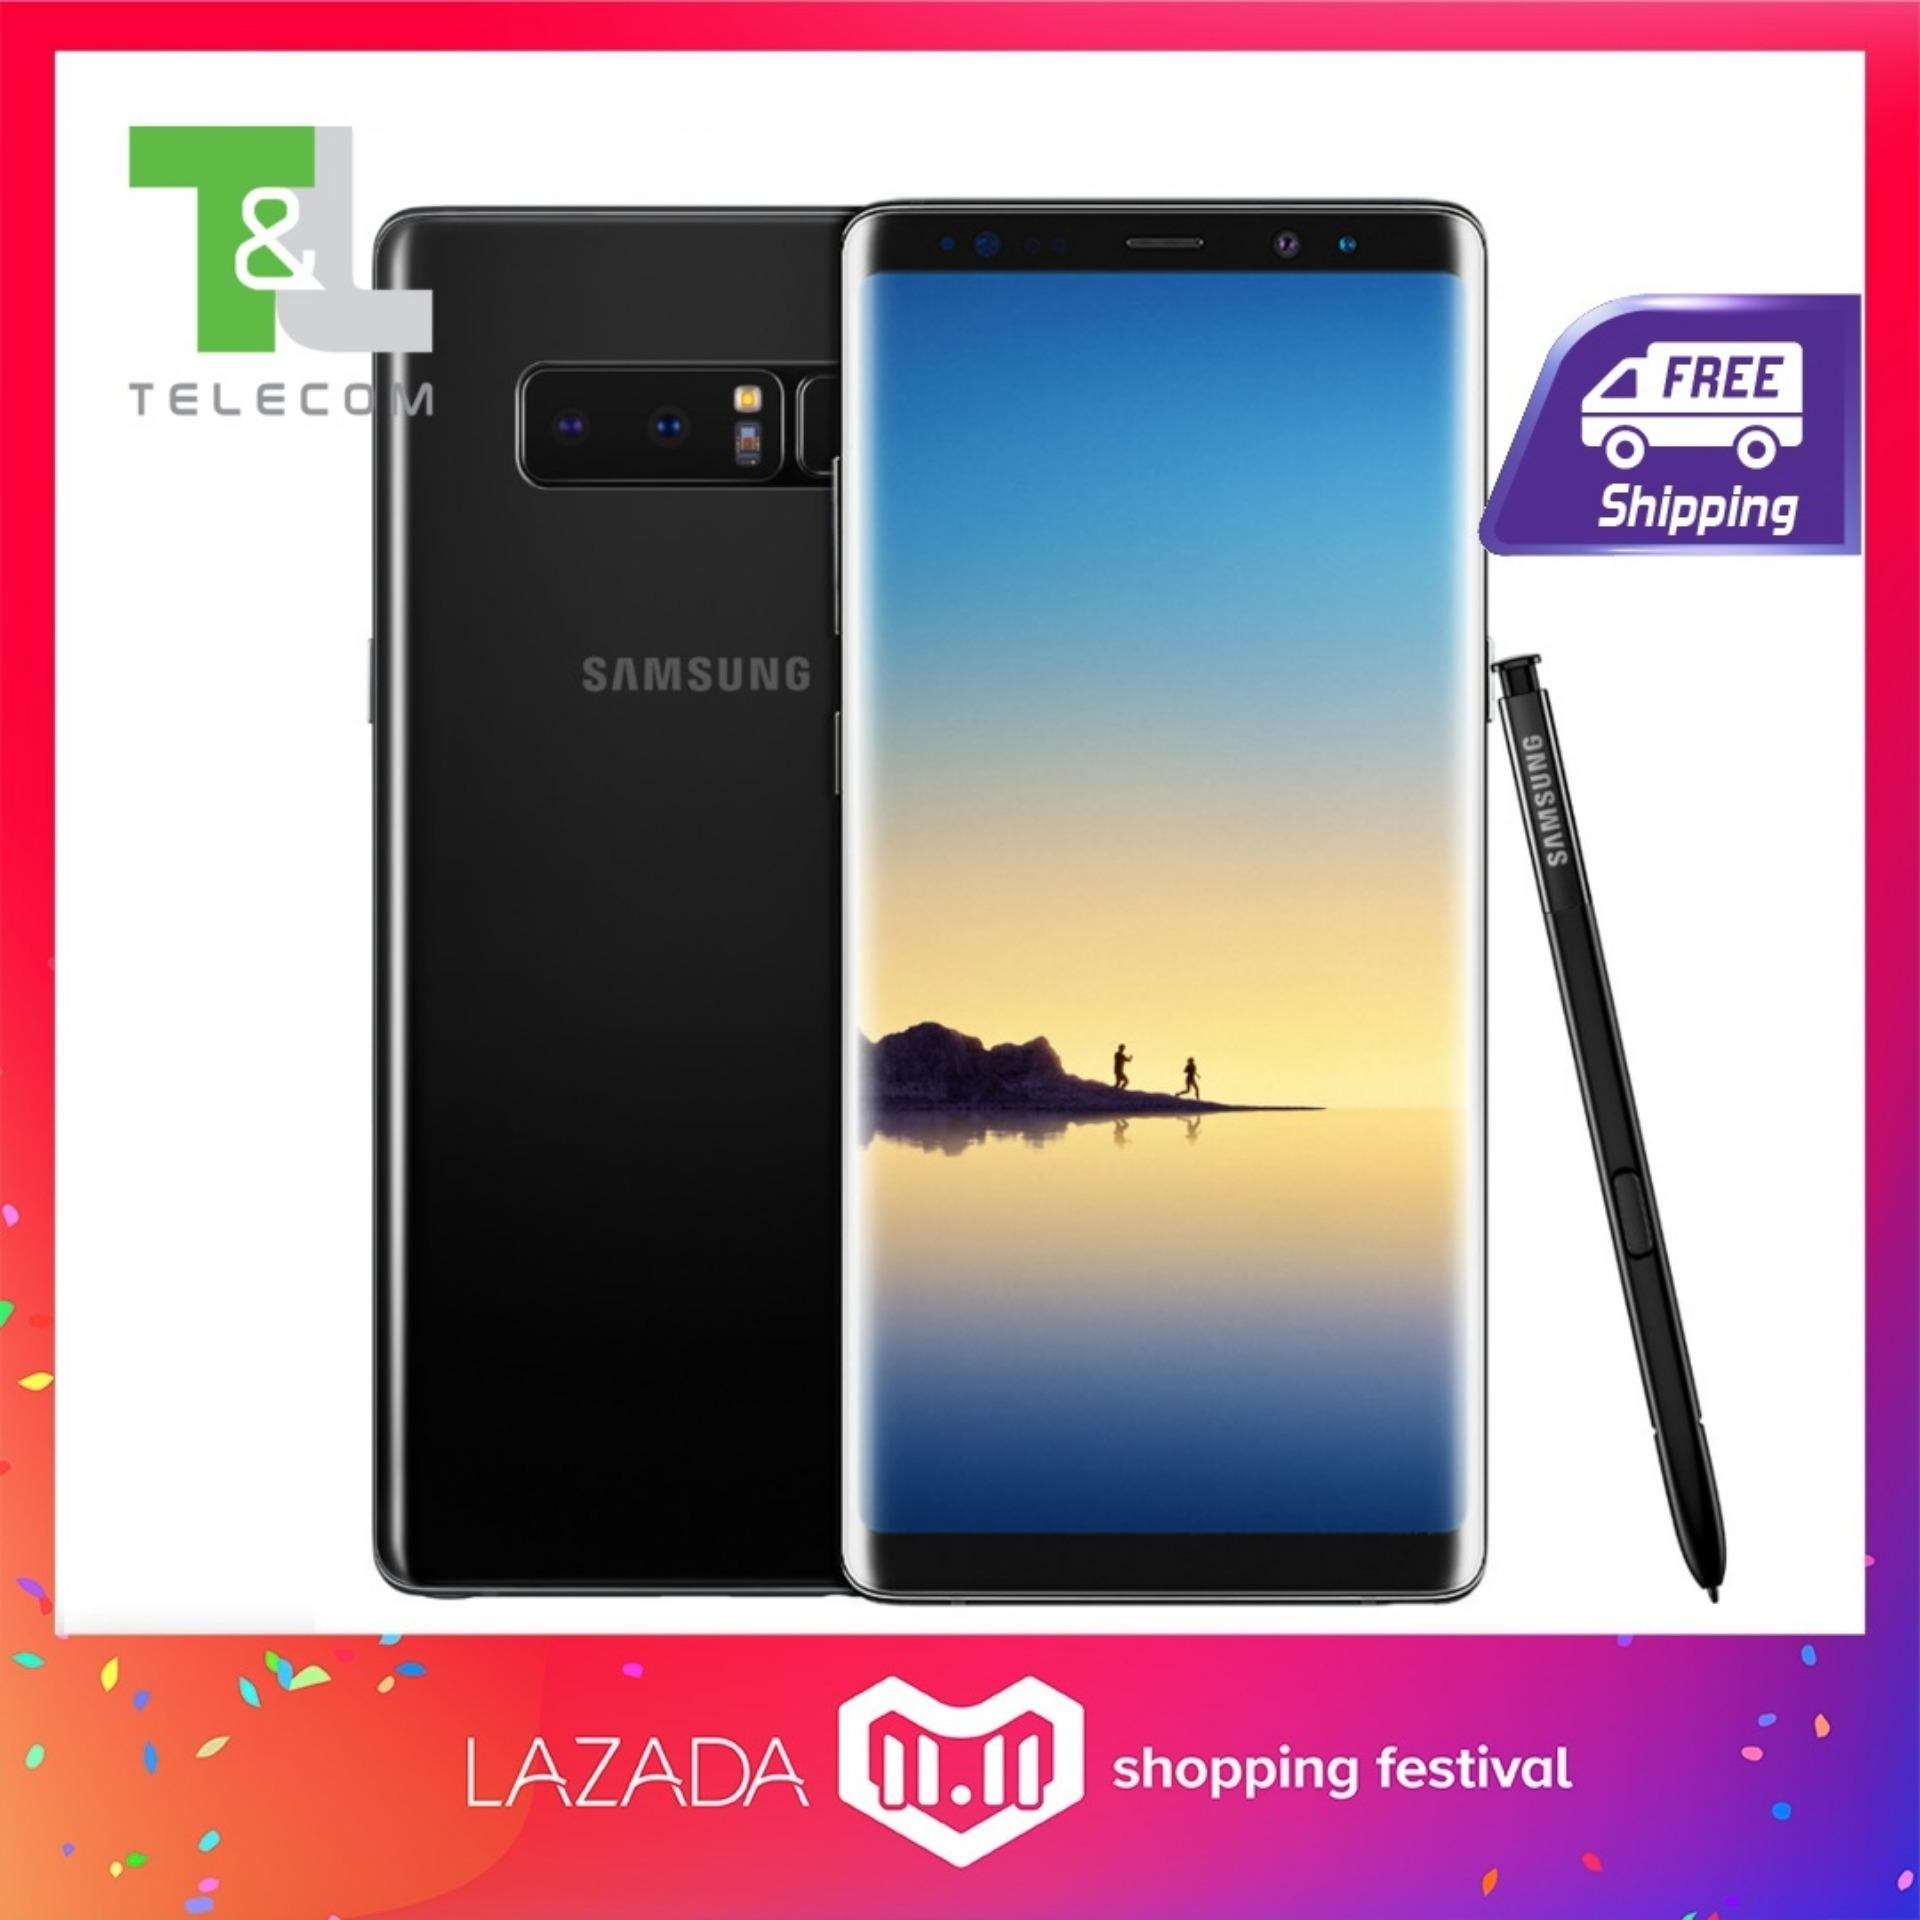 Samsung Philippines Phone For Sale Prices Reviews Lazada Galaxy V G313 Dual Sim Note 8 64gb 6gb Ram Lte Midnight Black New